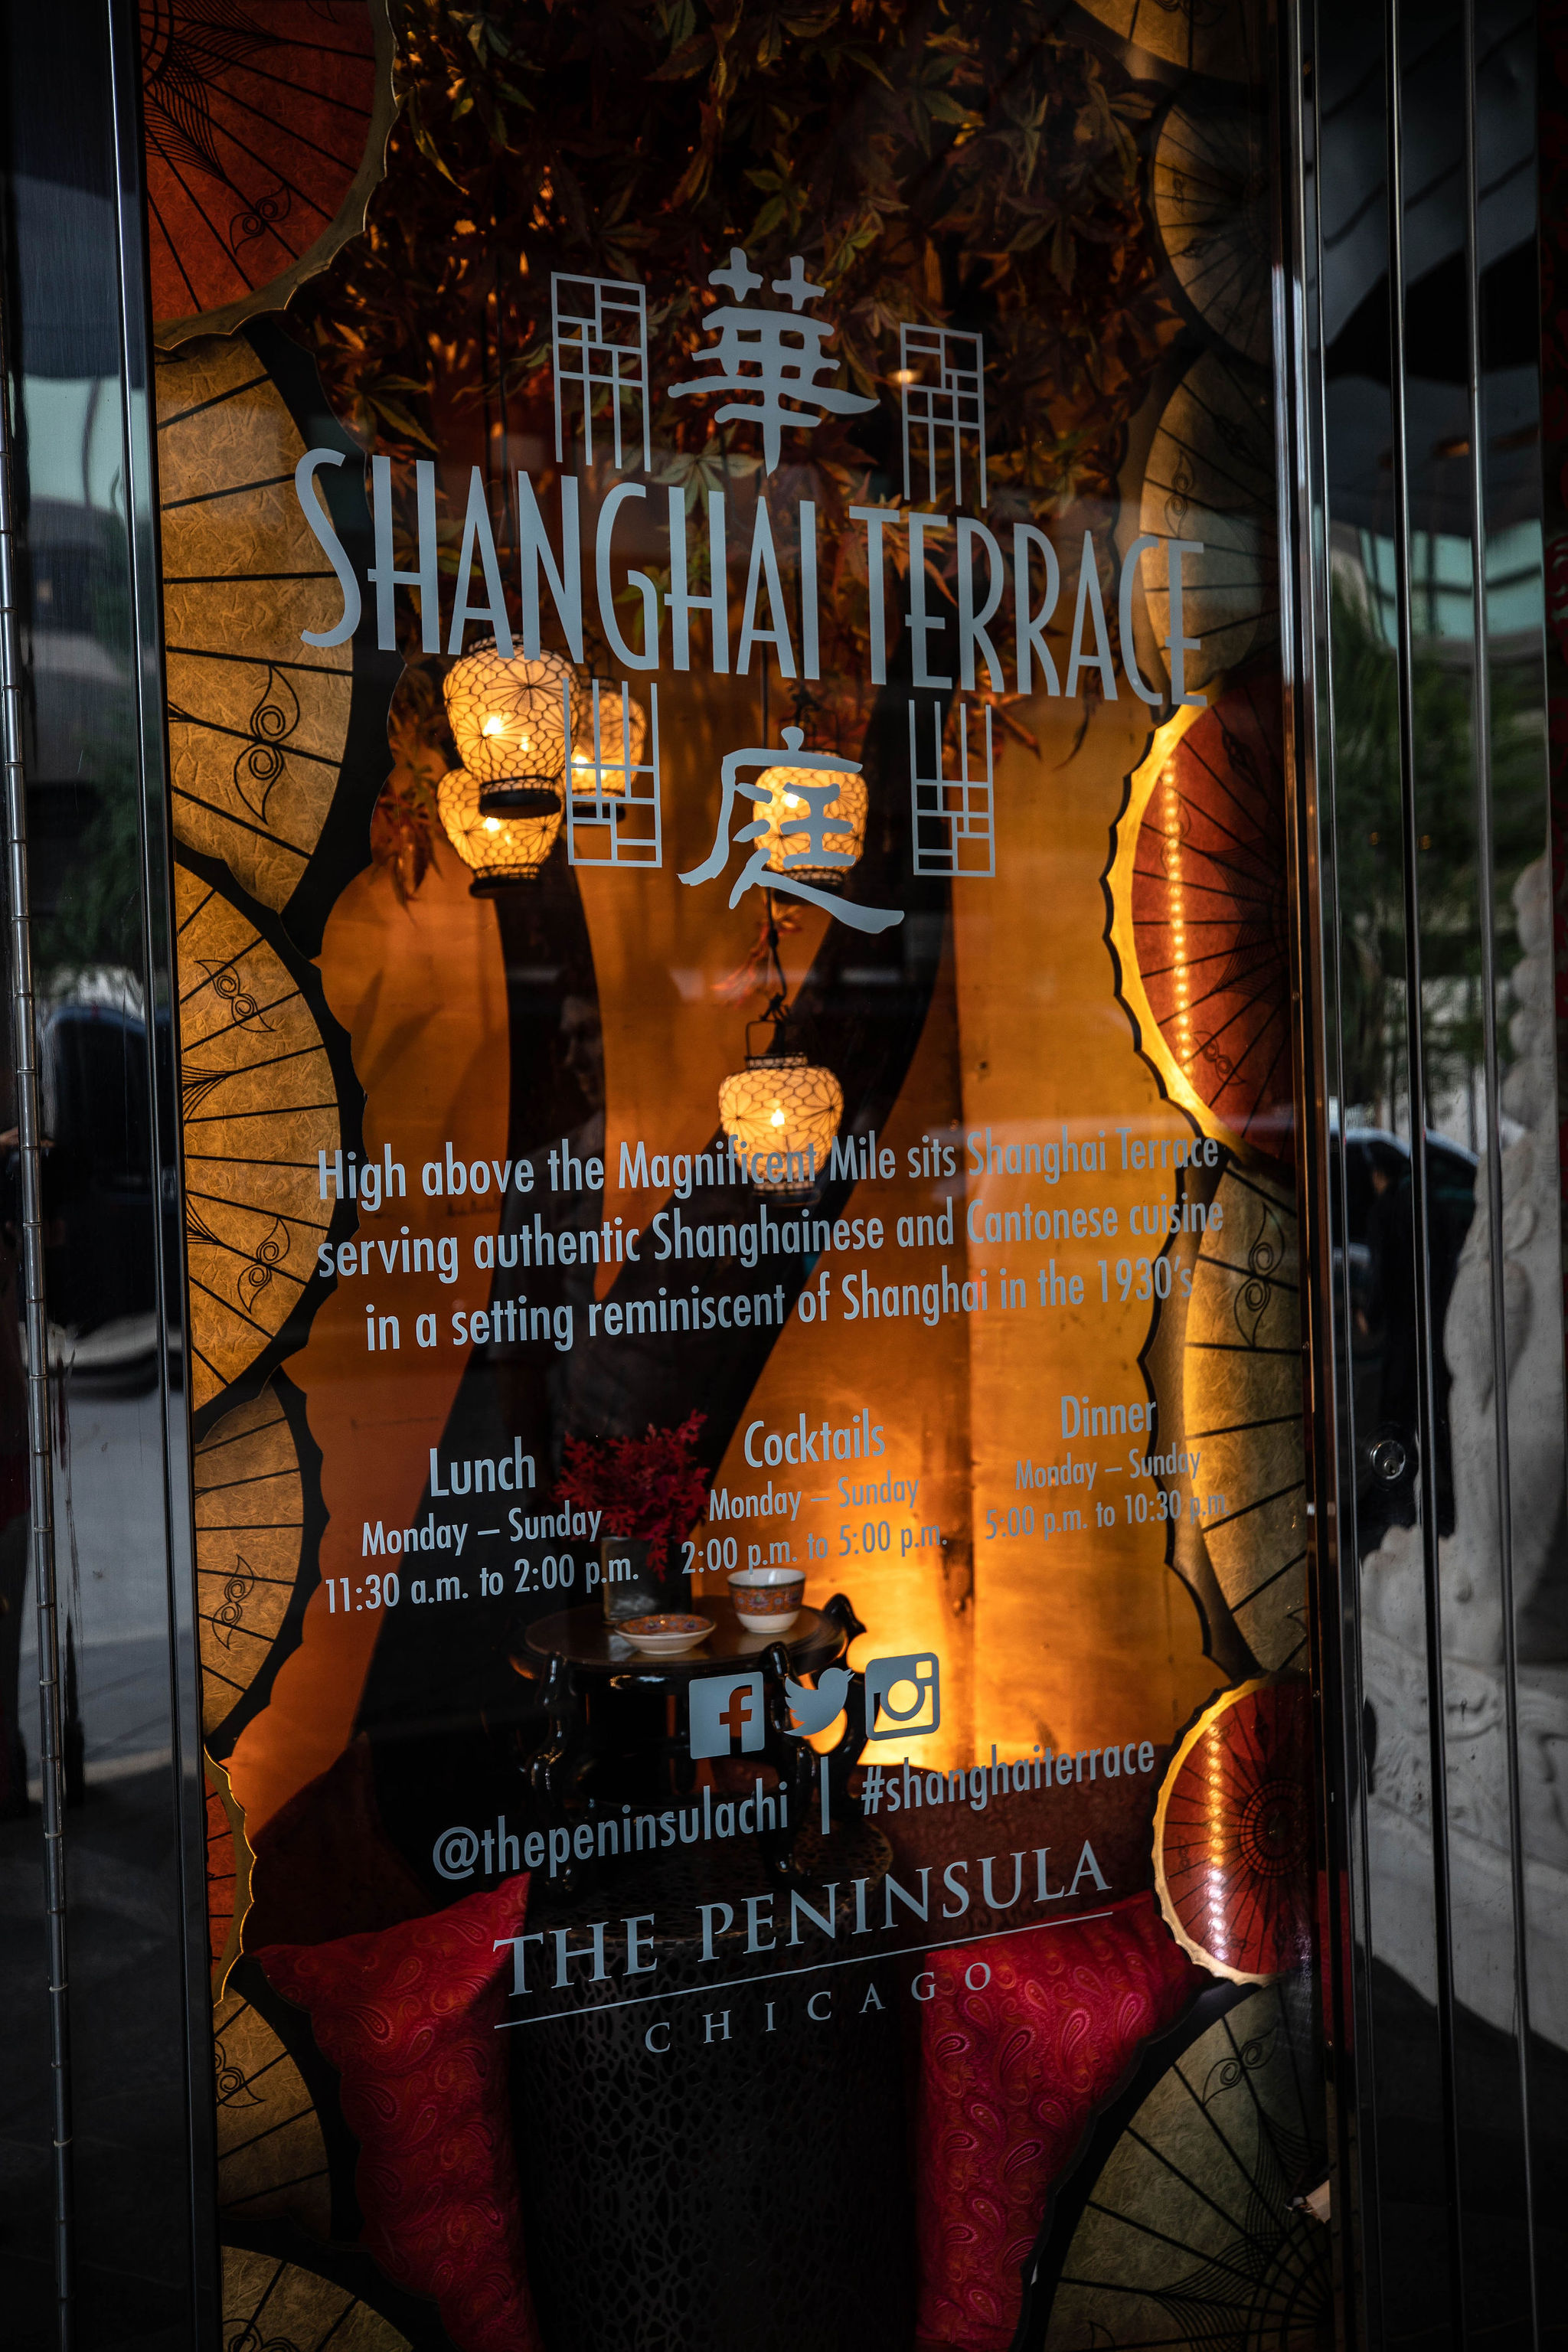 Shanghai Terrace Cantonese Delicacies Best Chinese Food in Chicago Award Winning Rooftop Dining Luxury Restaurants Midwest